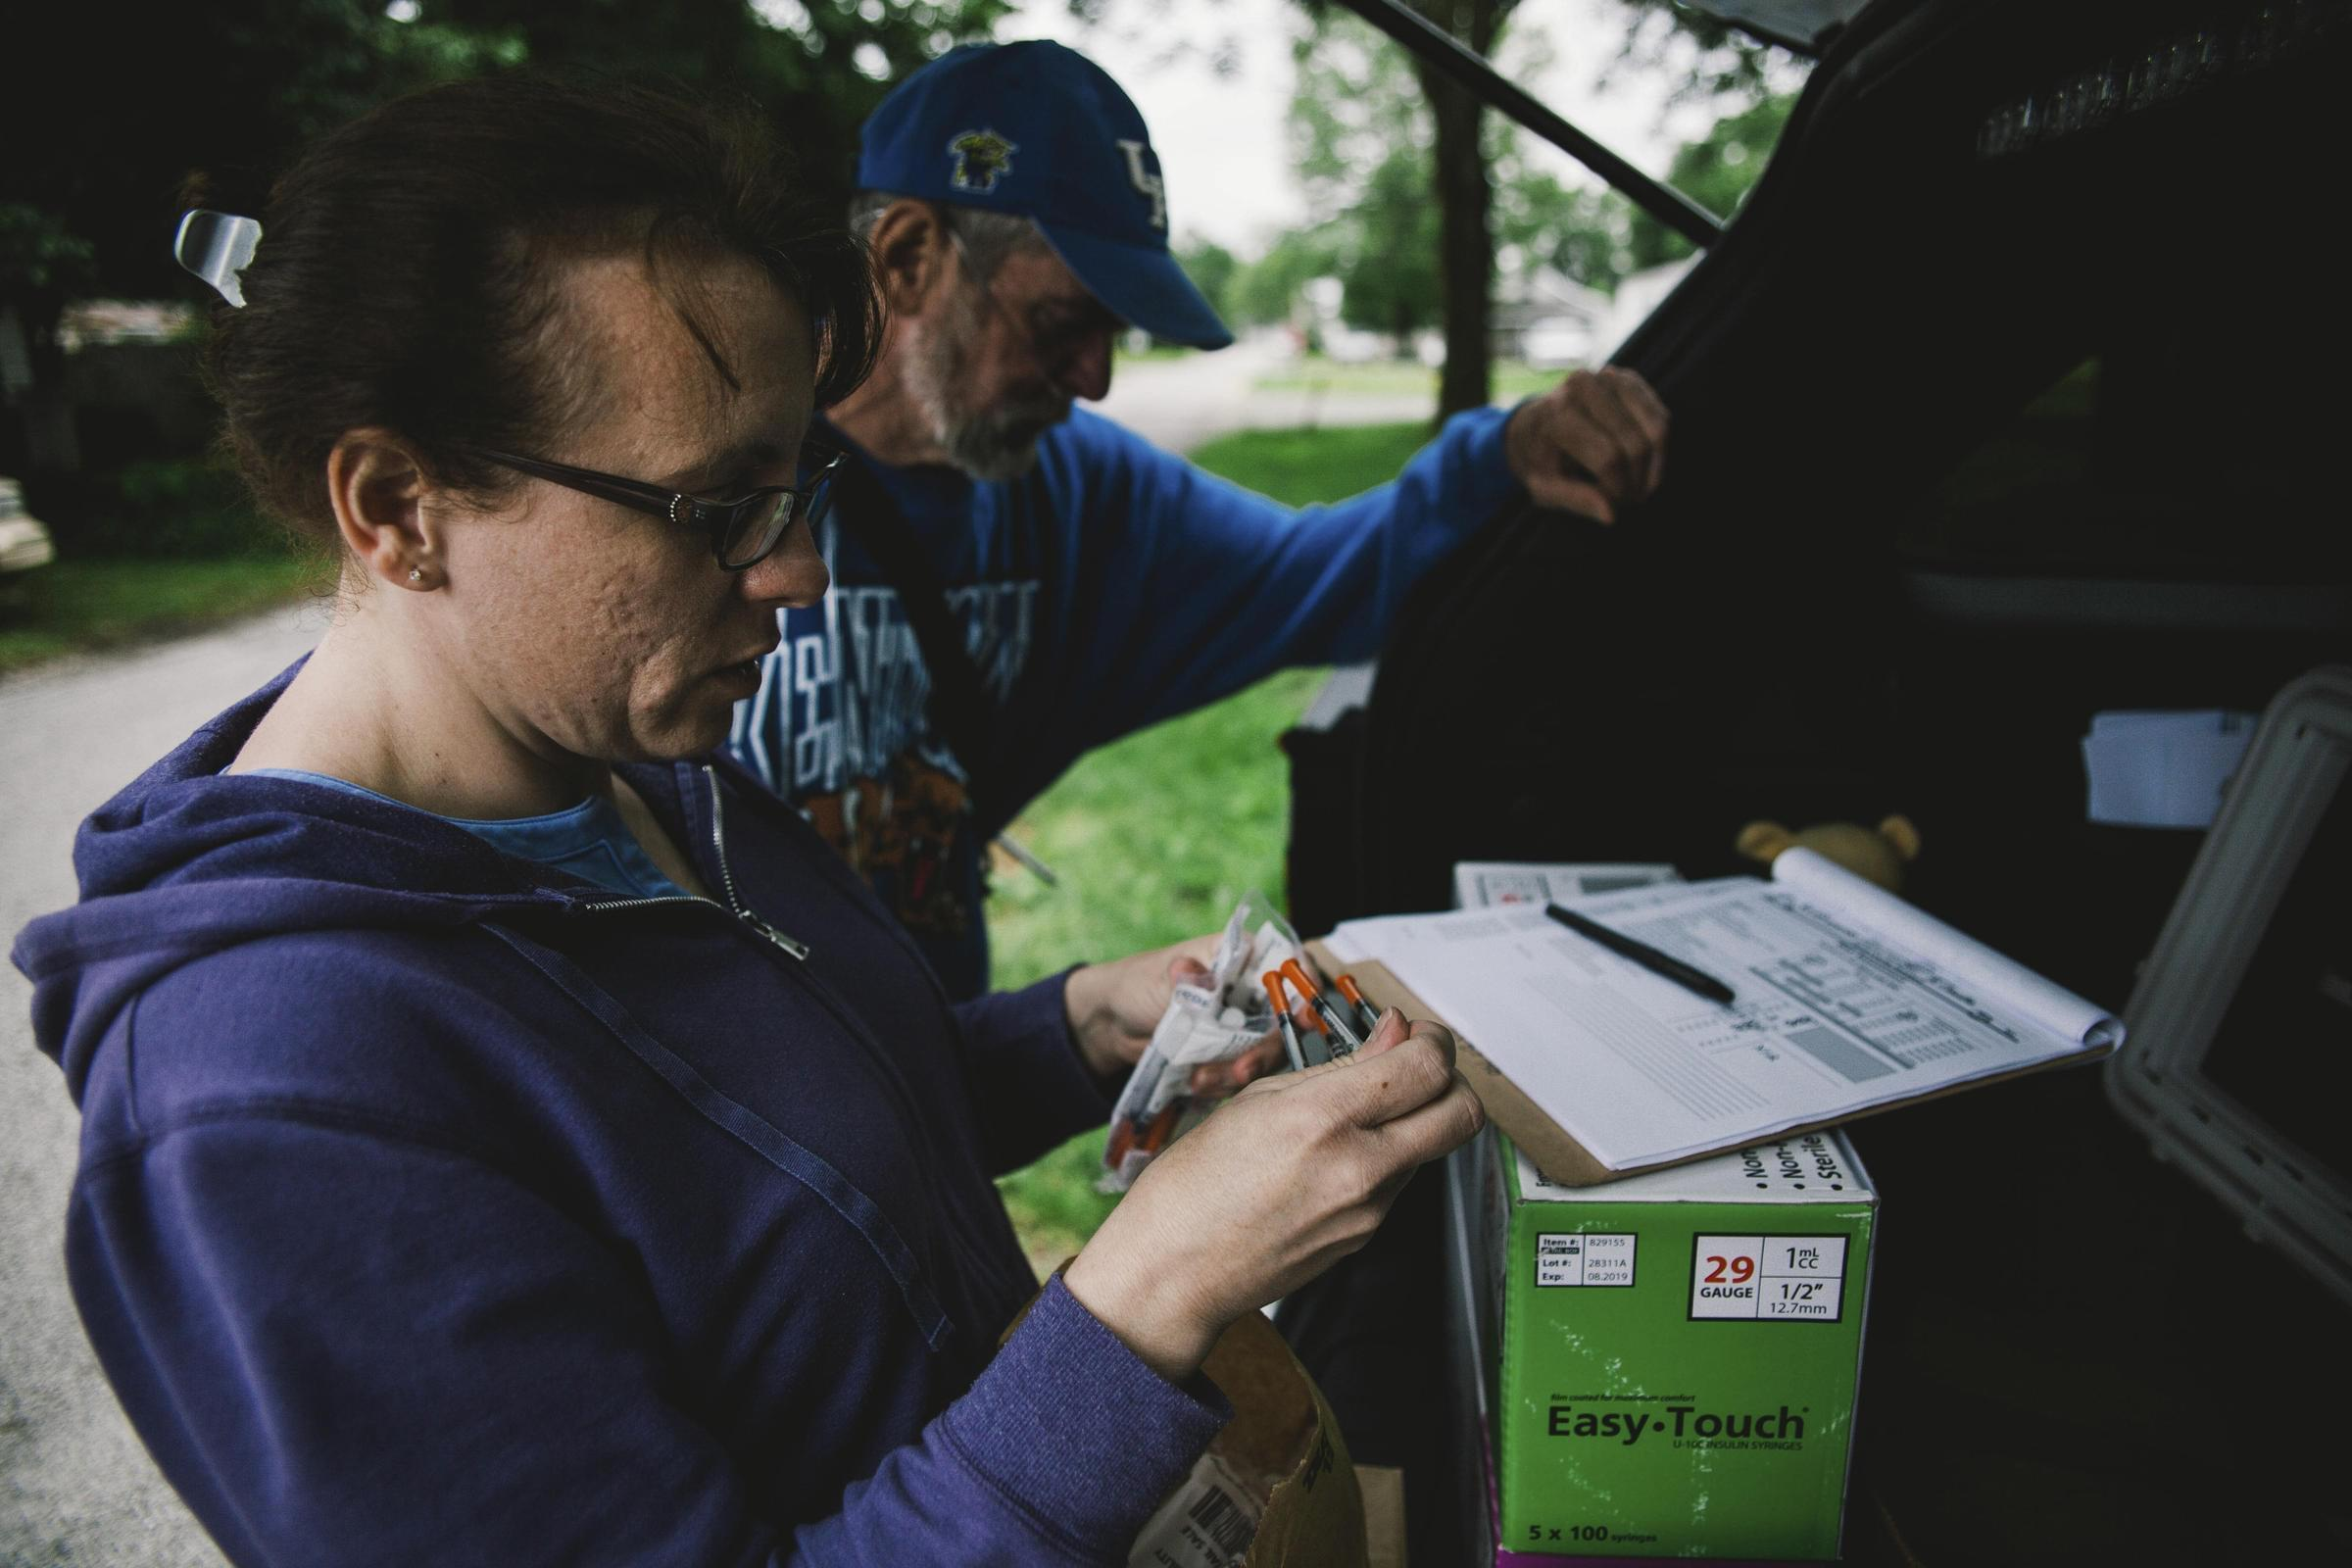 The Scott County Health Department's Brittany Combs makes a weekly stop with the county's syringe exchange program's mobile unit in Austin, Indiana.